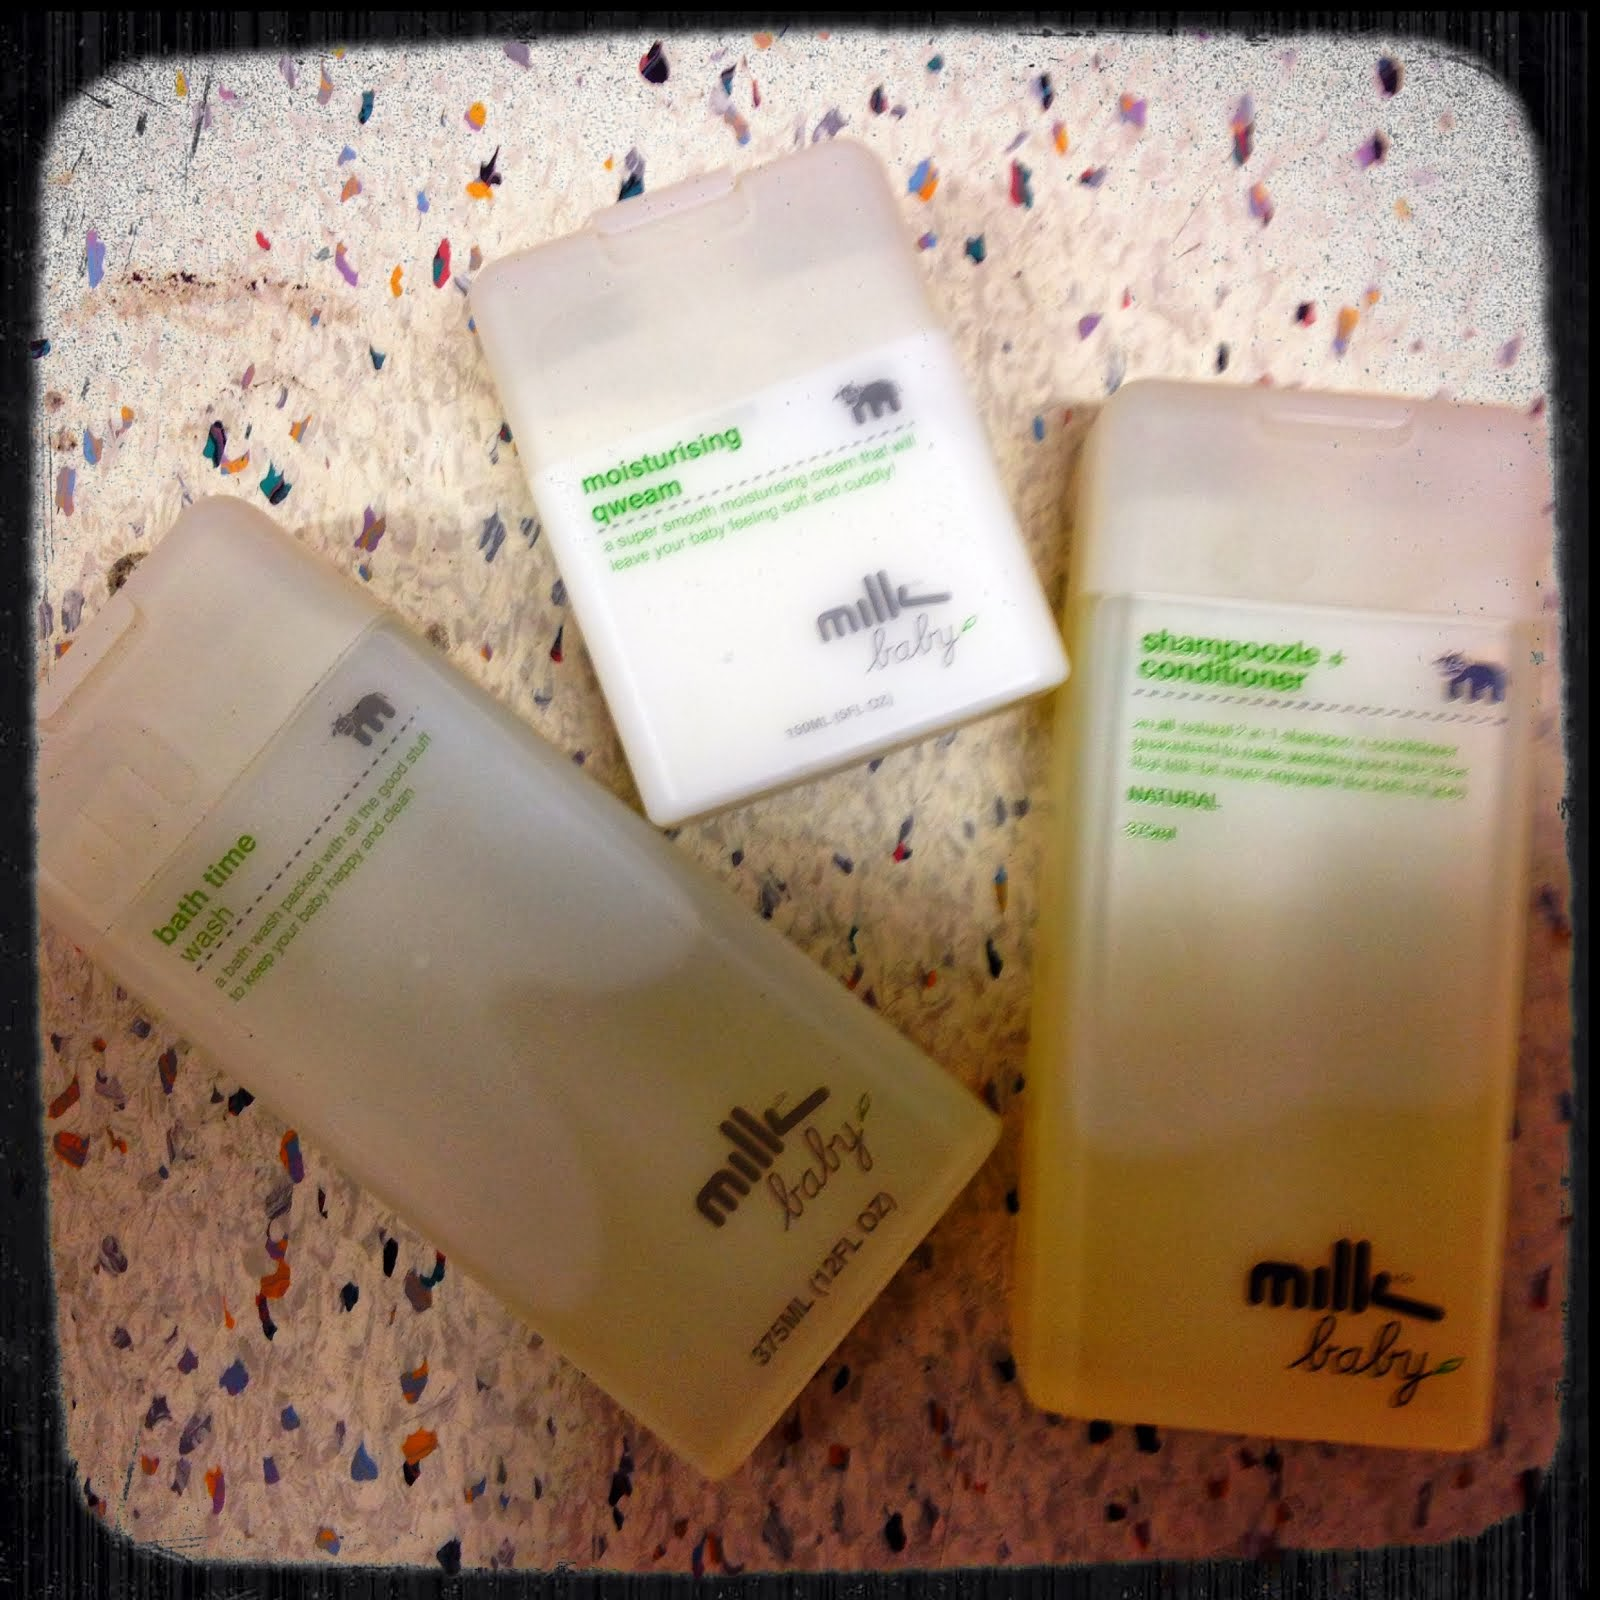 V. I. BUY: Milk & Co Baby Products